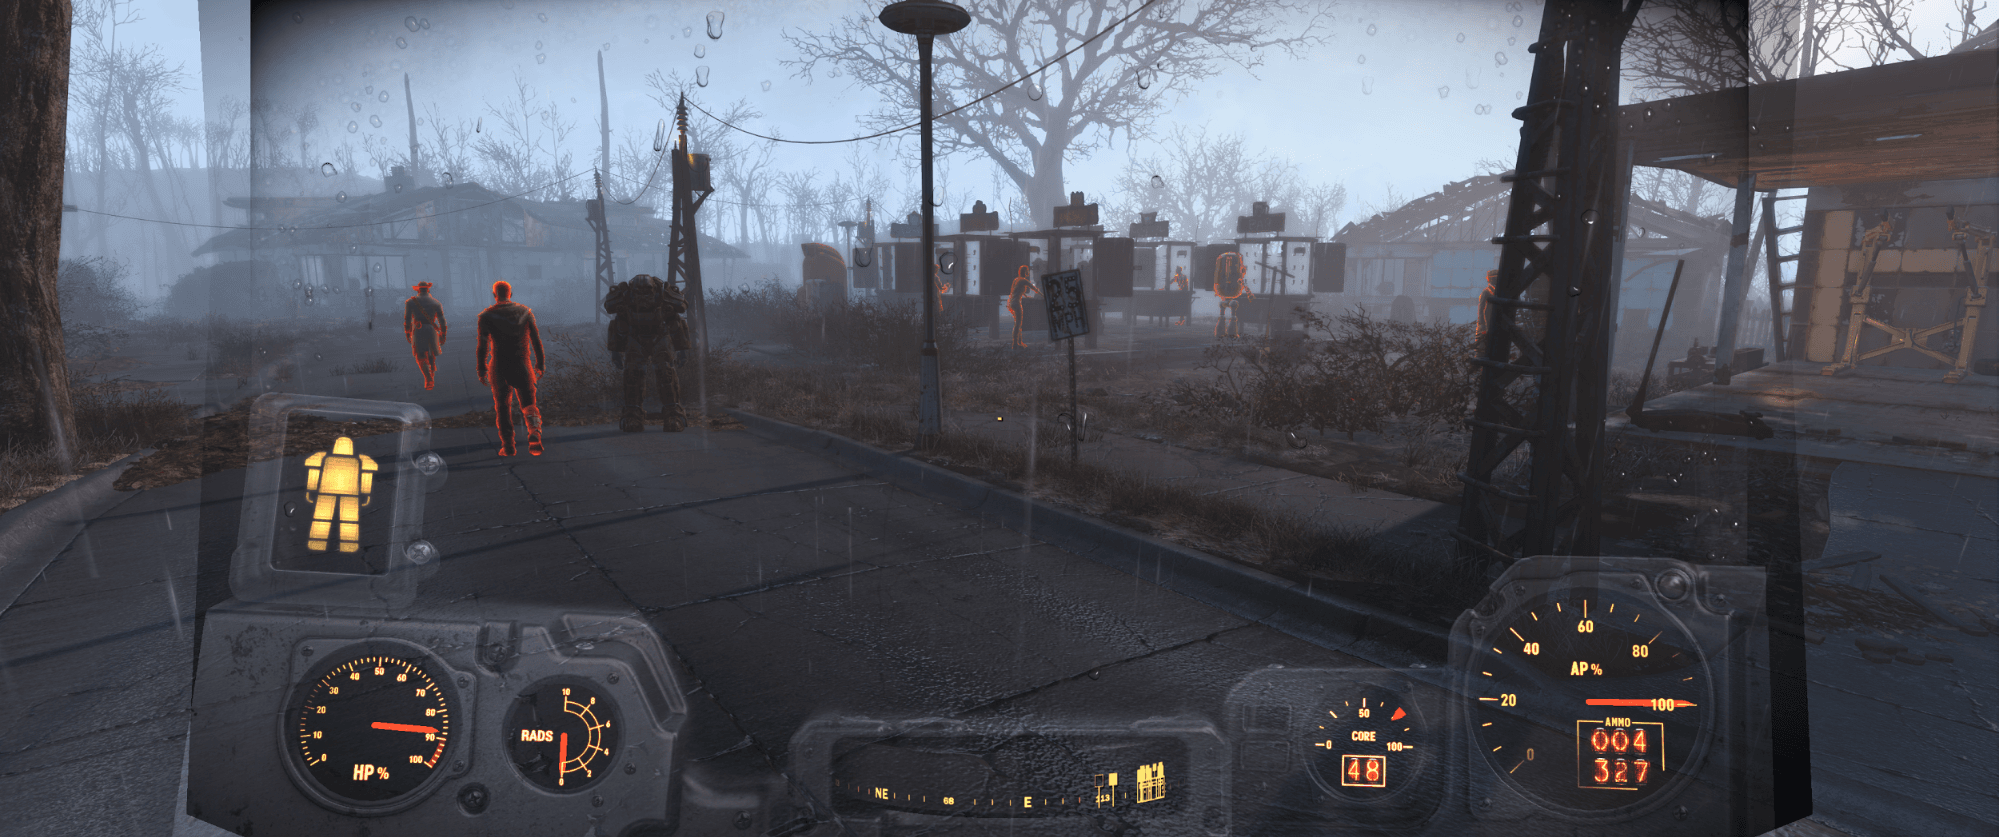 Fallout 4 Power Armor UI issues